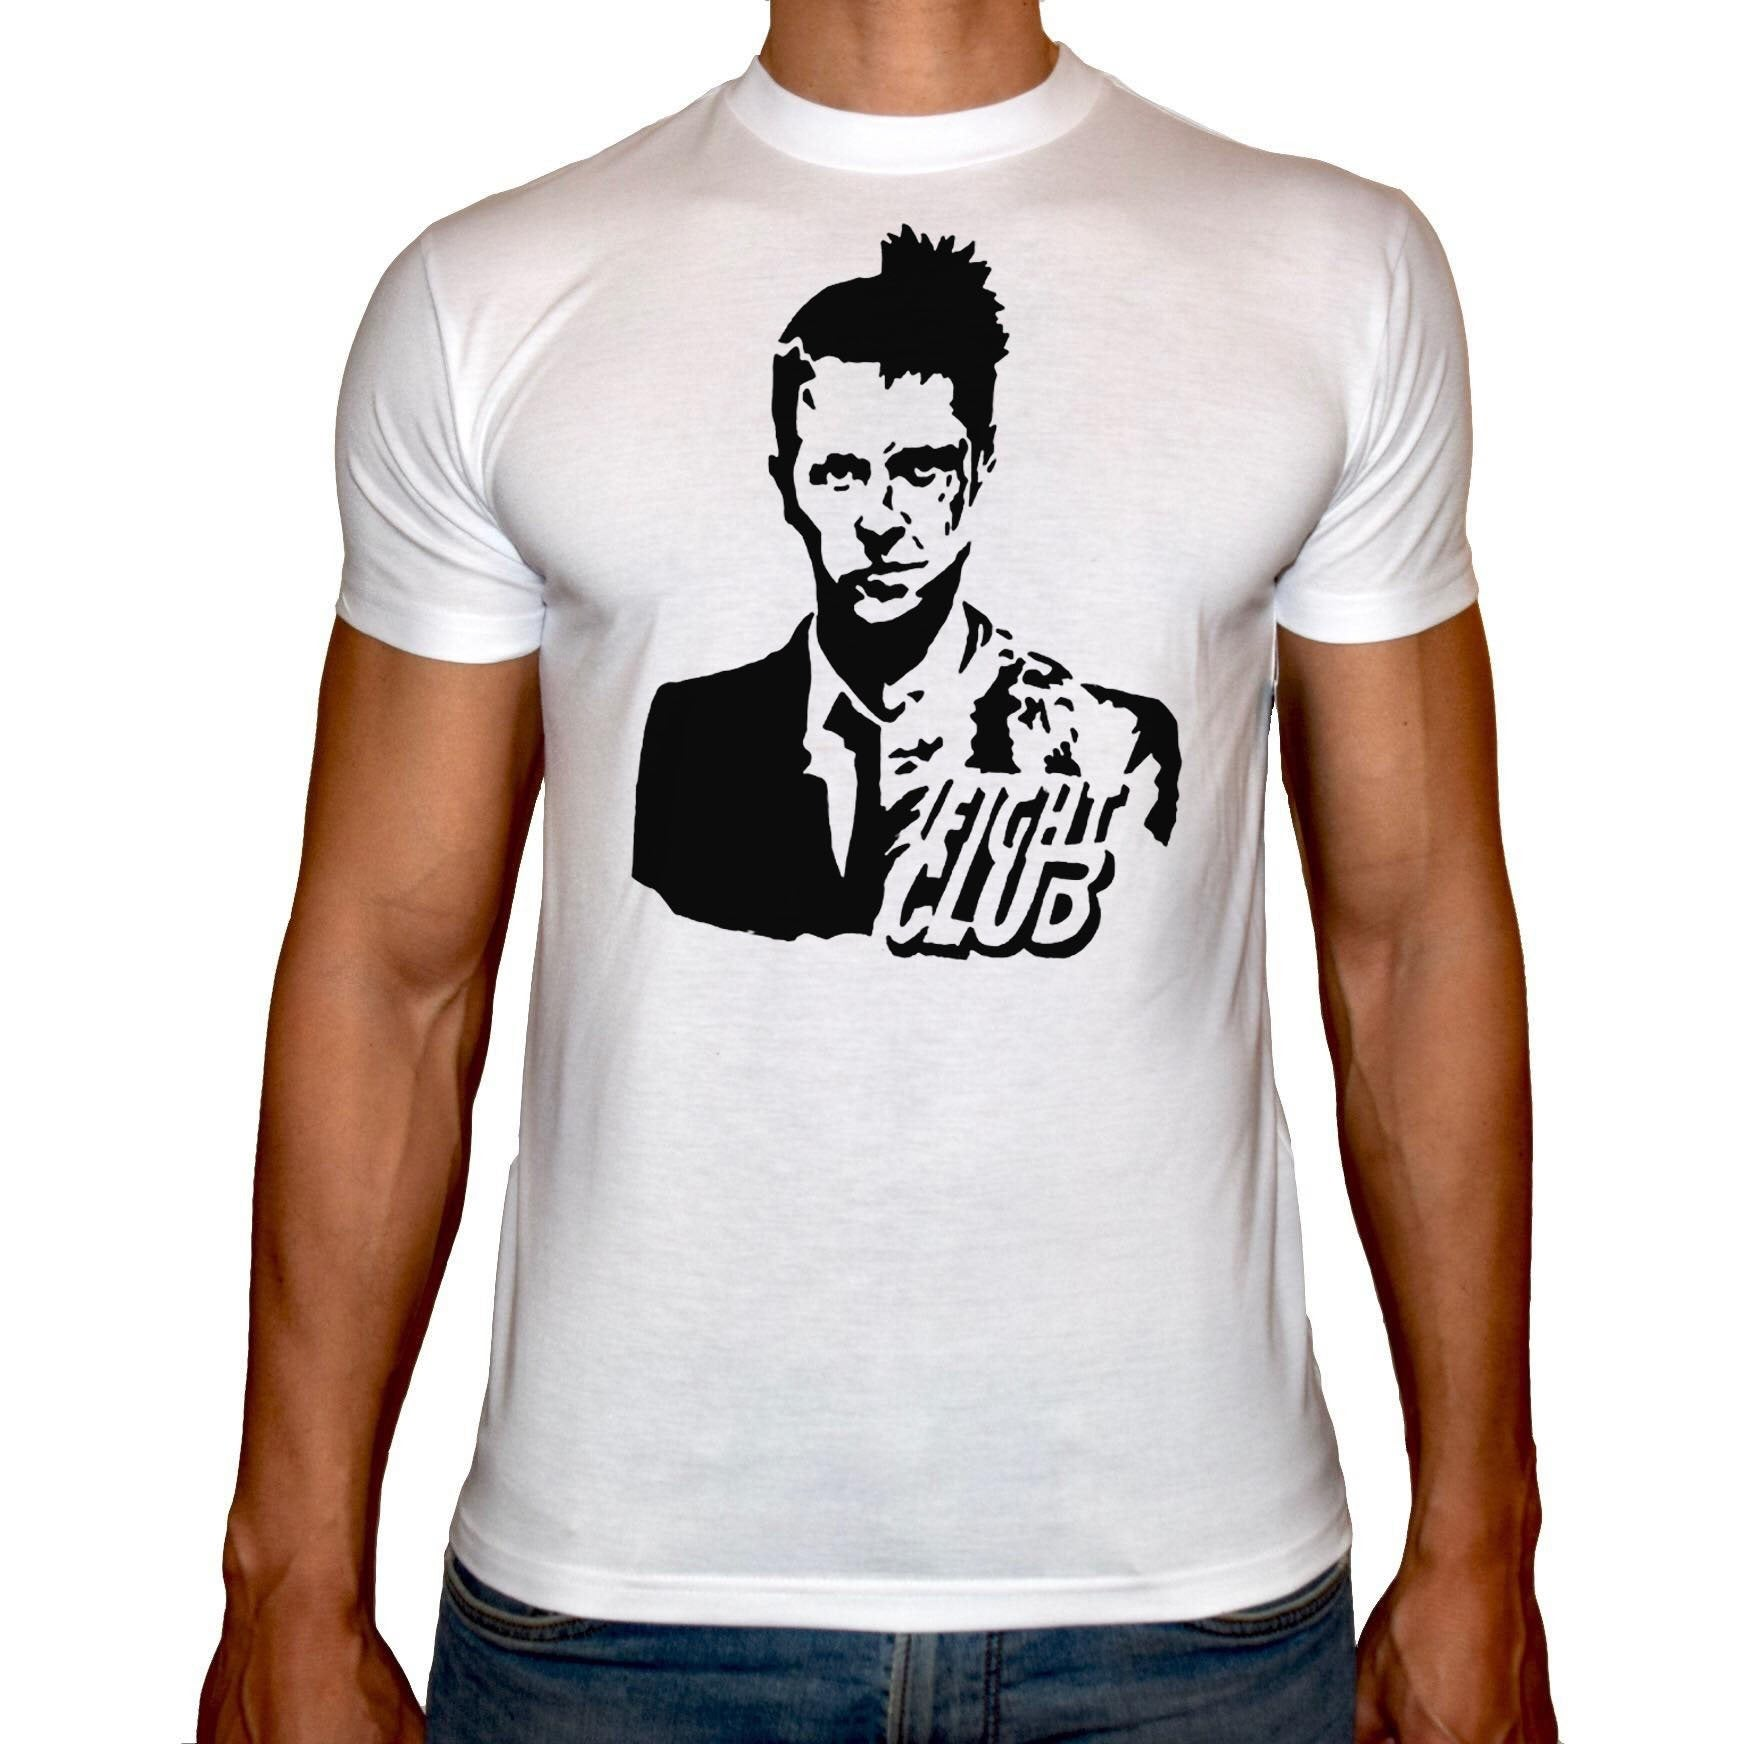 Phoenix WHITE Round Neck Printed T-Shirt Men (Fight club)